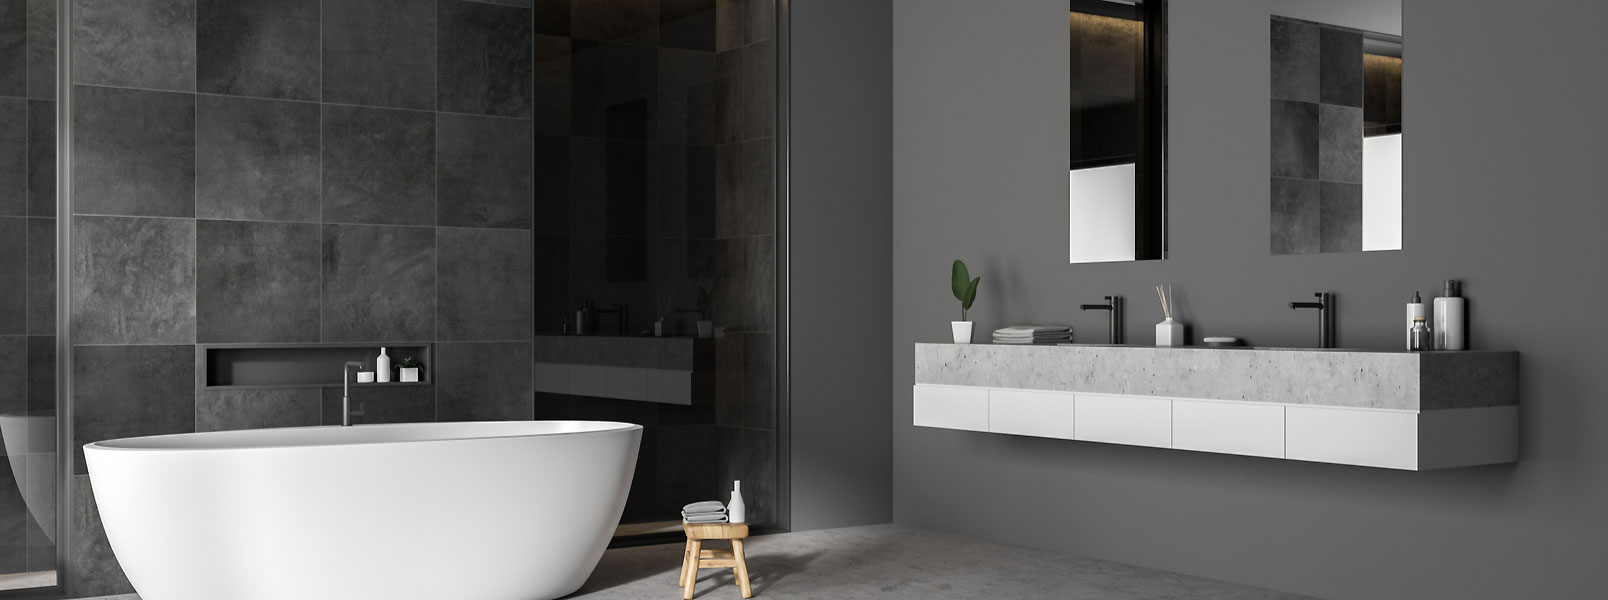 10 Bathroom Trends to Look Out For As 2020 Approaches on zen master bathrooms, zen themed bathrooms, zen color scheme ideas, calming bedroom paint colors, zen garden, cream cabinets with taupe paint colors, zen room, zen bath, spa paint colors, zen inspiration,